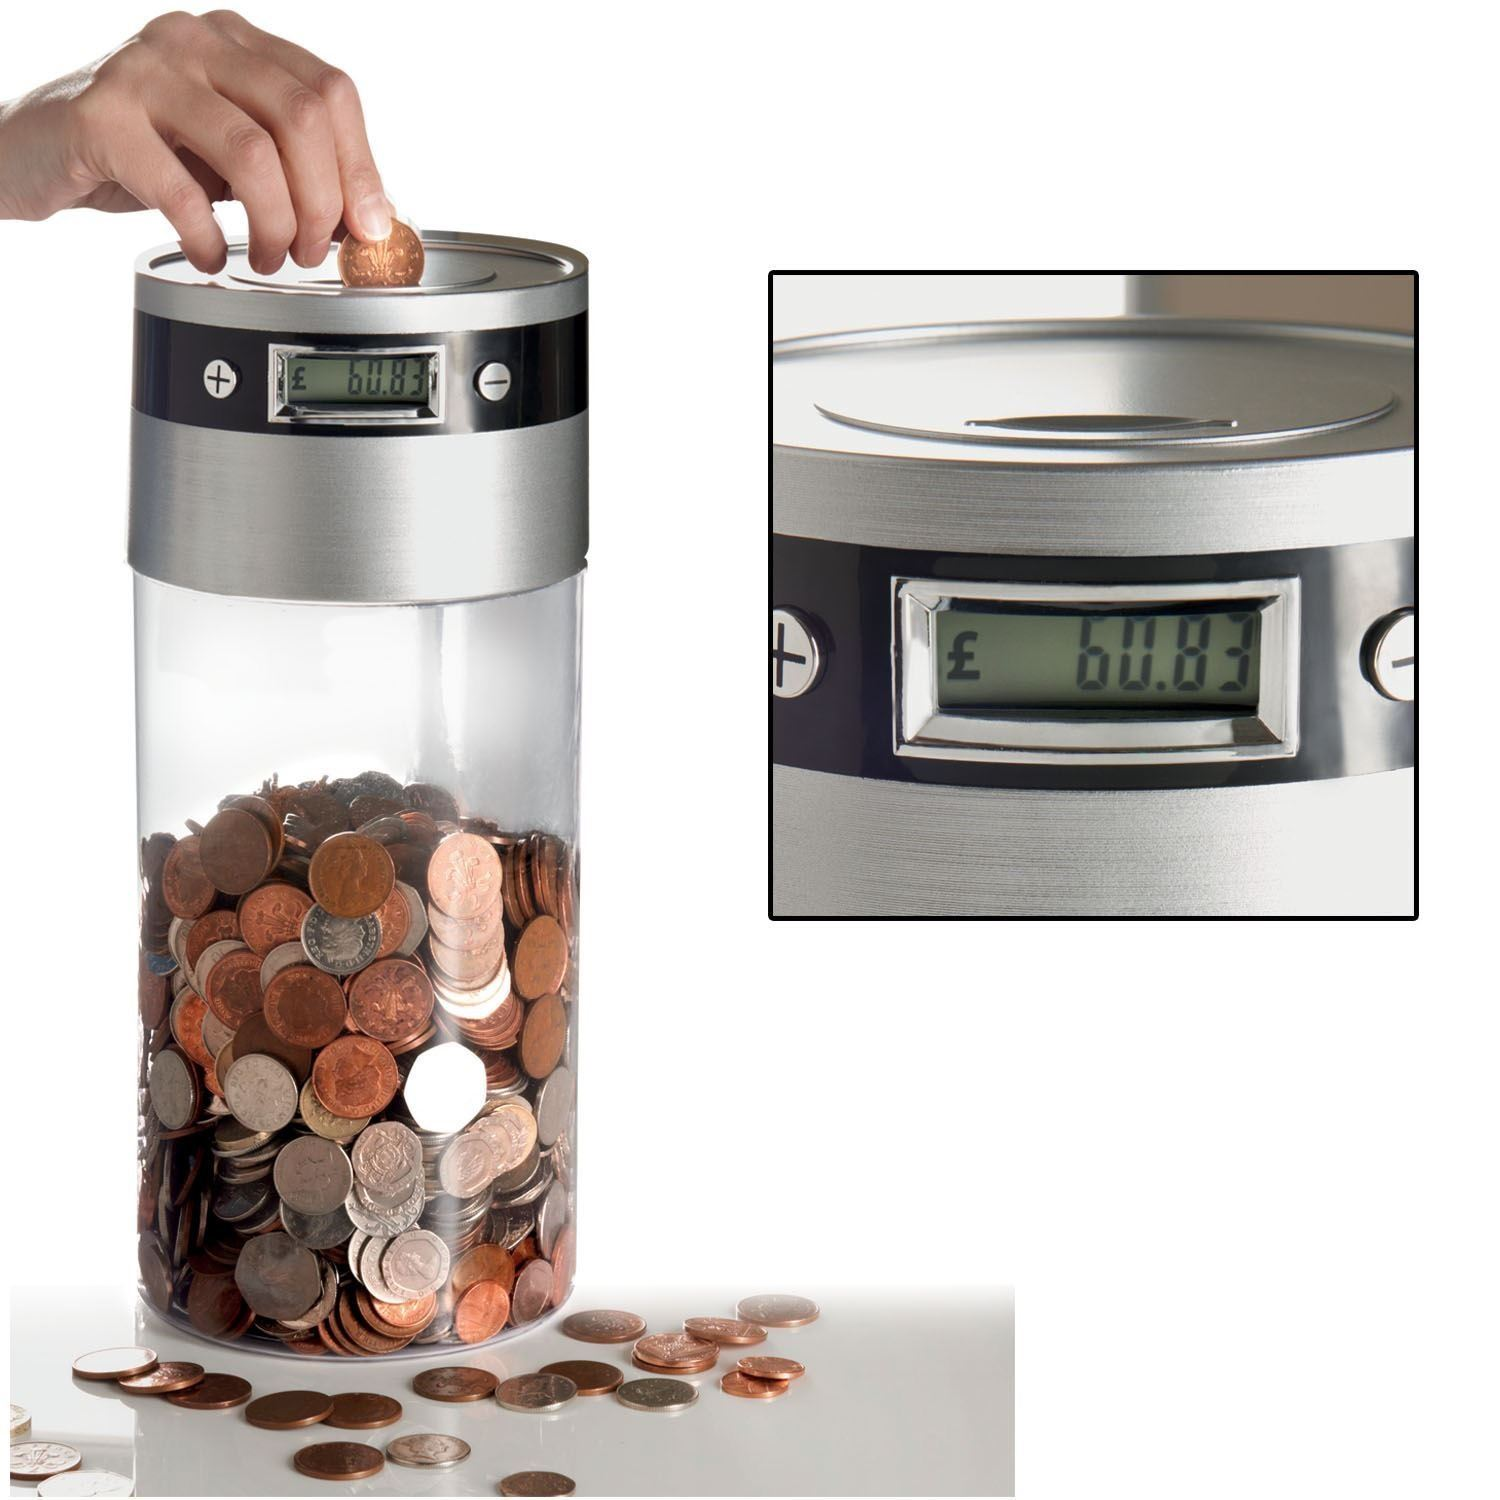 Piggy Bank With Counter Digital Atm Money Savings Bank Lcd Display Coin Counter